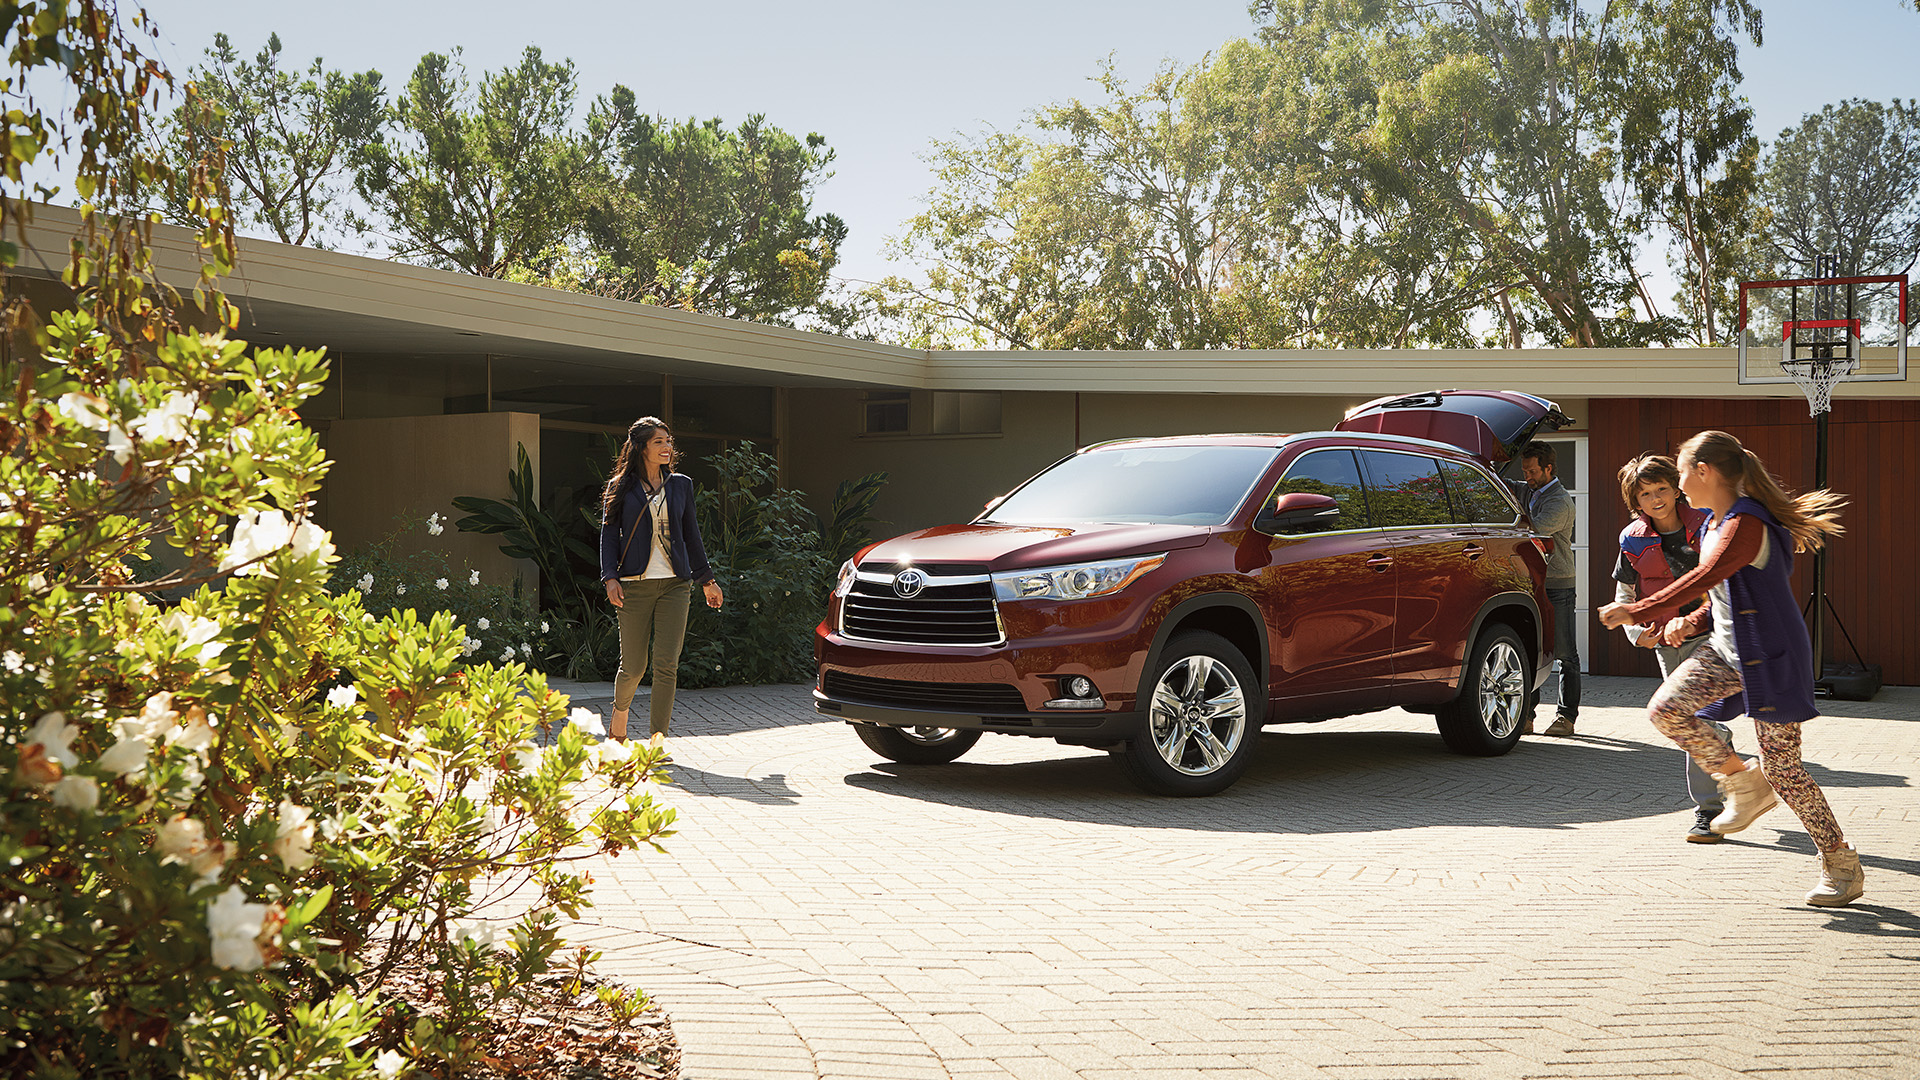 Toyota Highlander Owners Manual: Things you should know